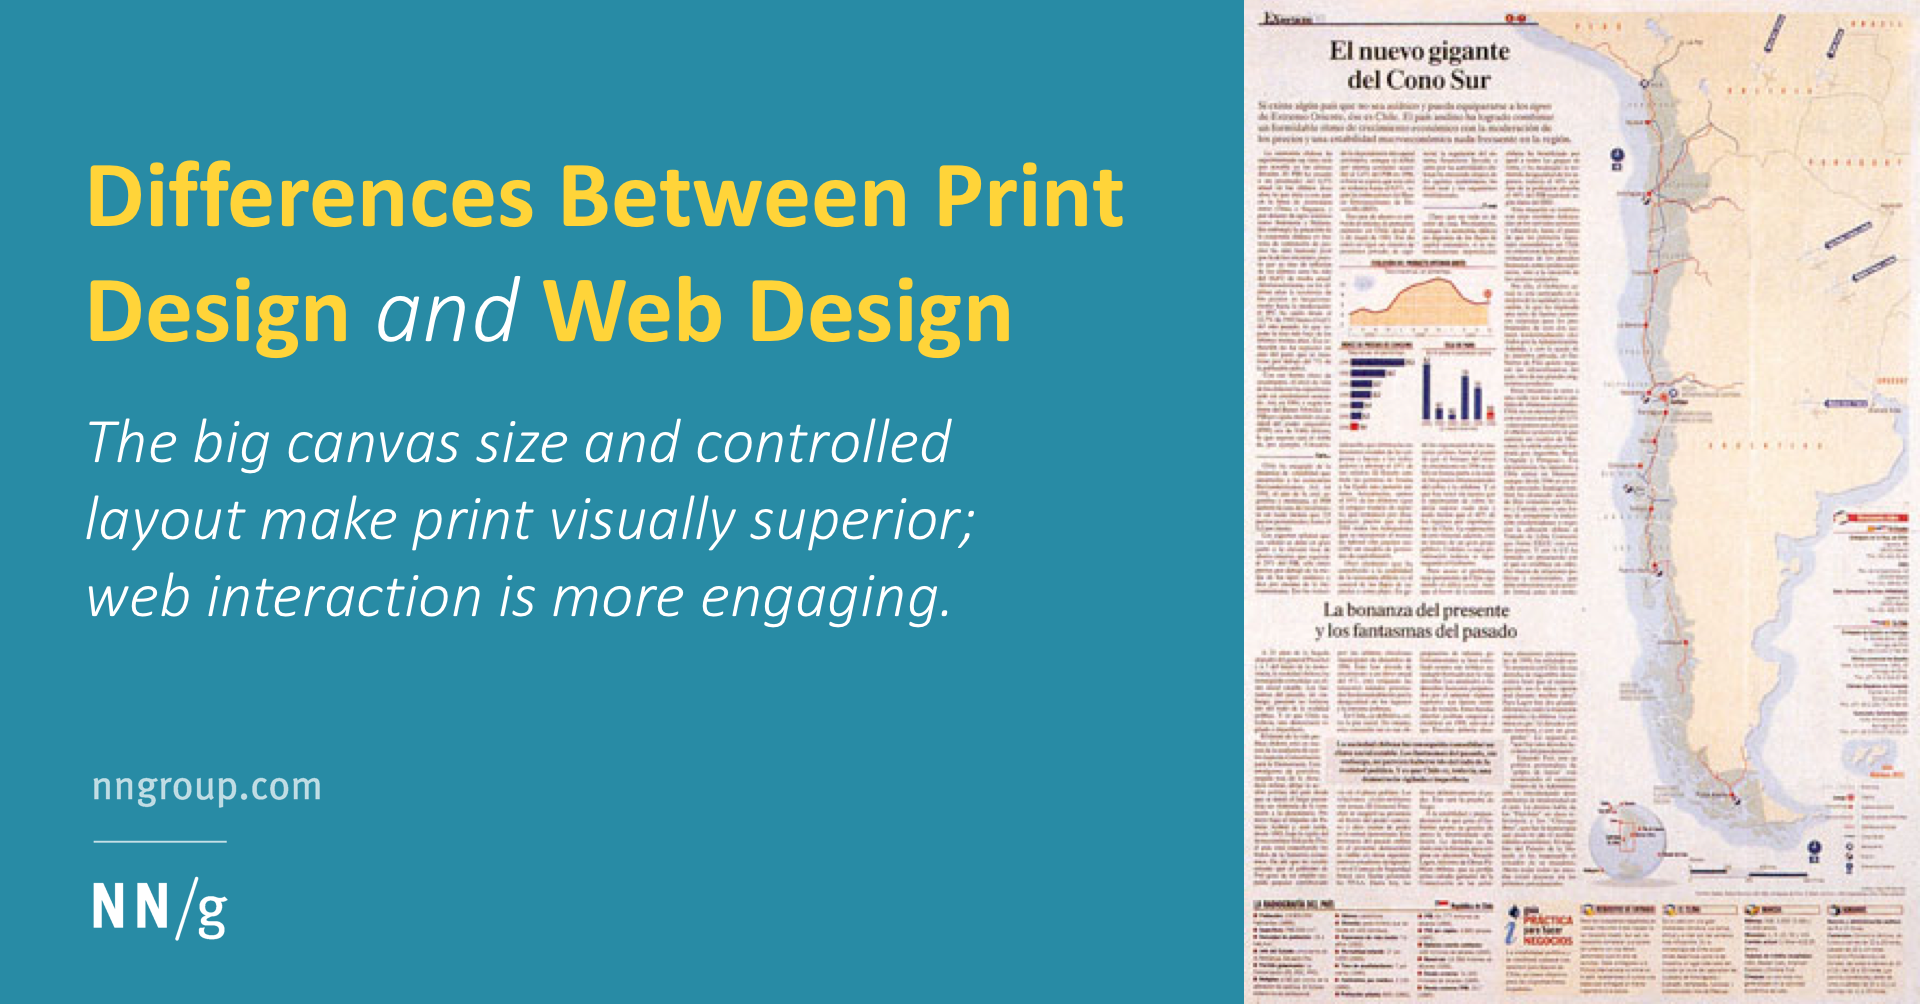 Differences Between Print Design and Web Design